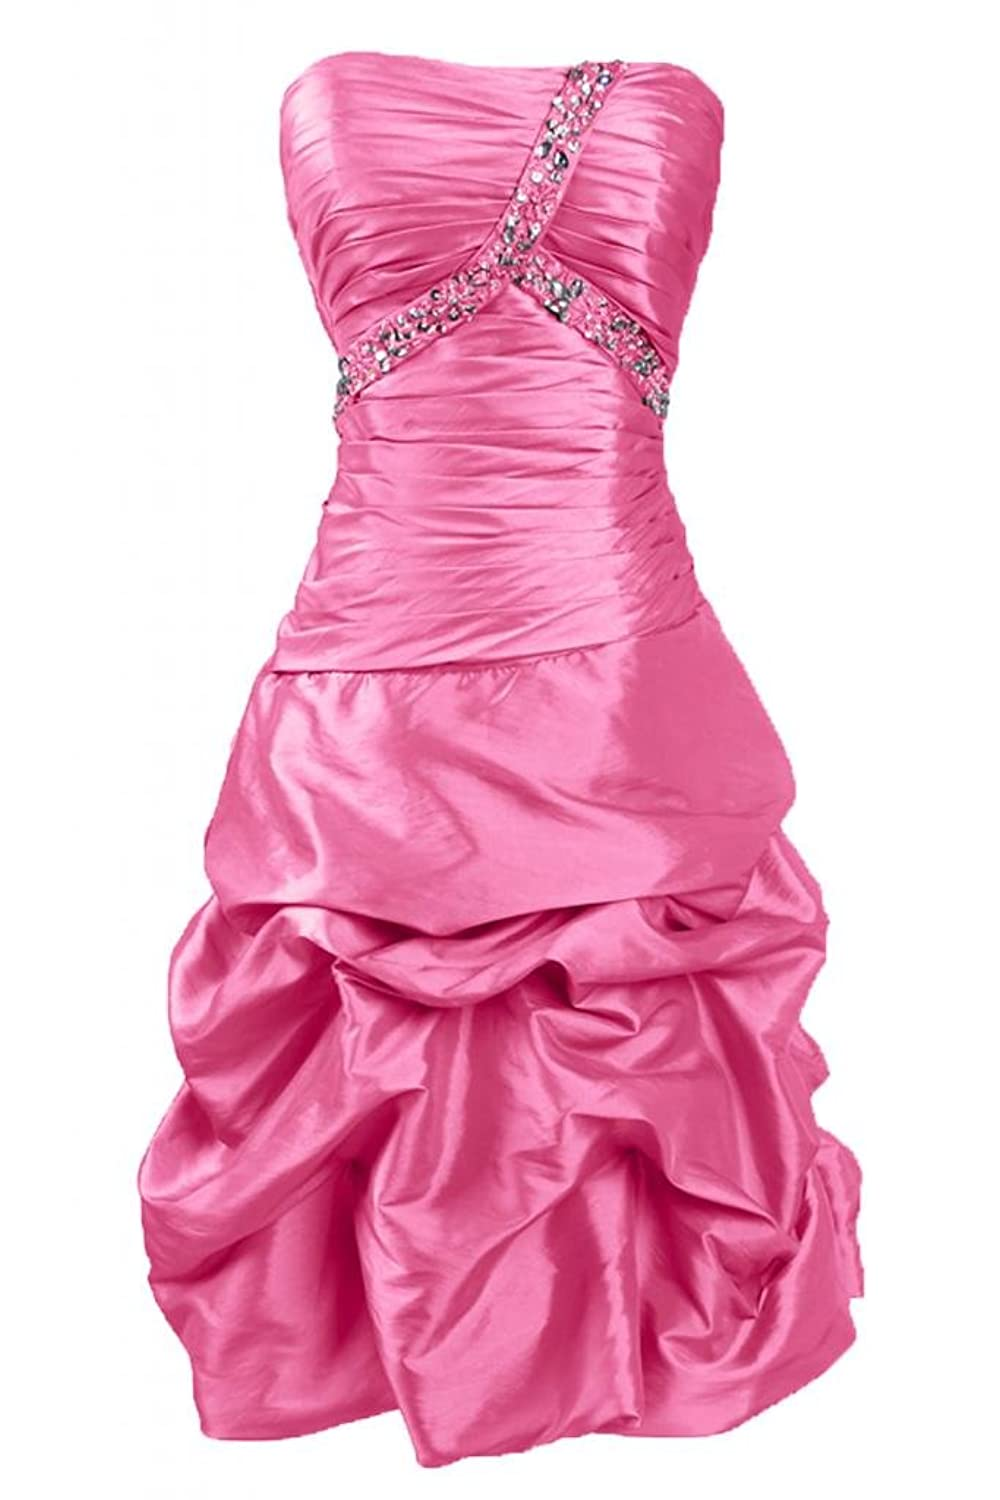 Sunvary Sexy A Line Taffeta Cocktail Party Dresses Strapless Short Homecoming Dresses